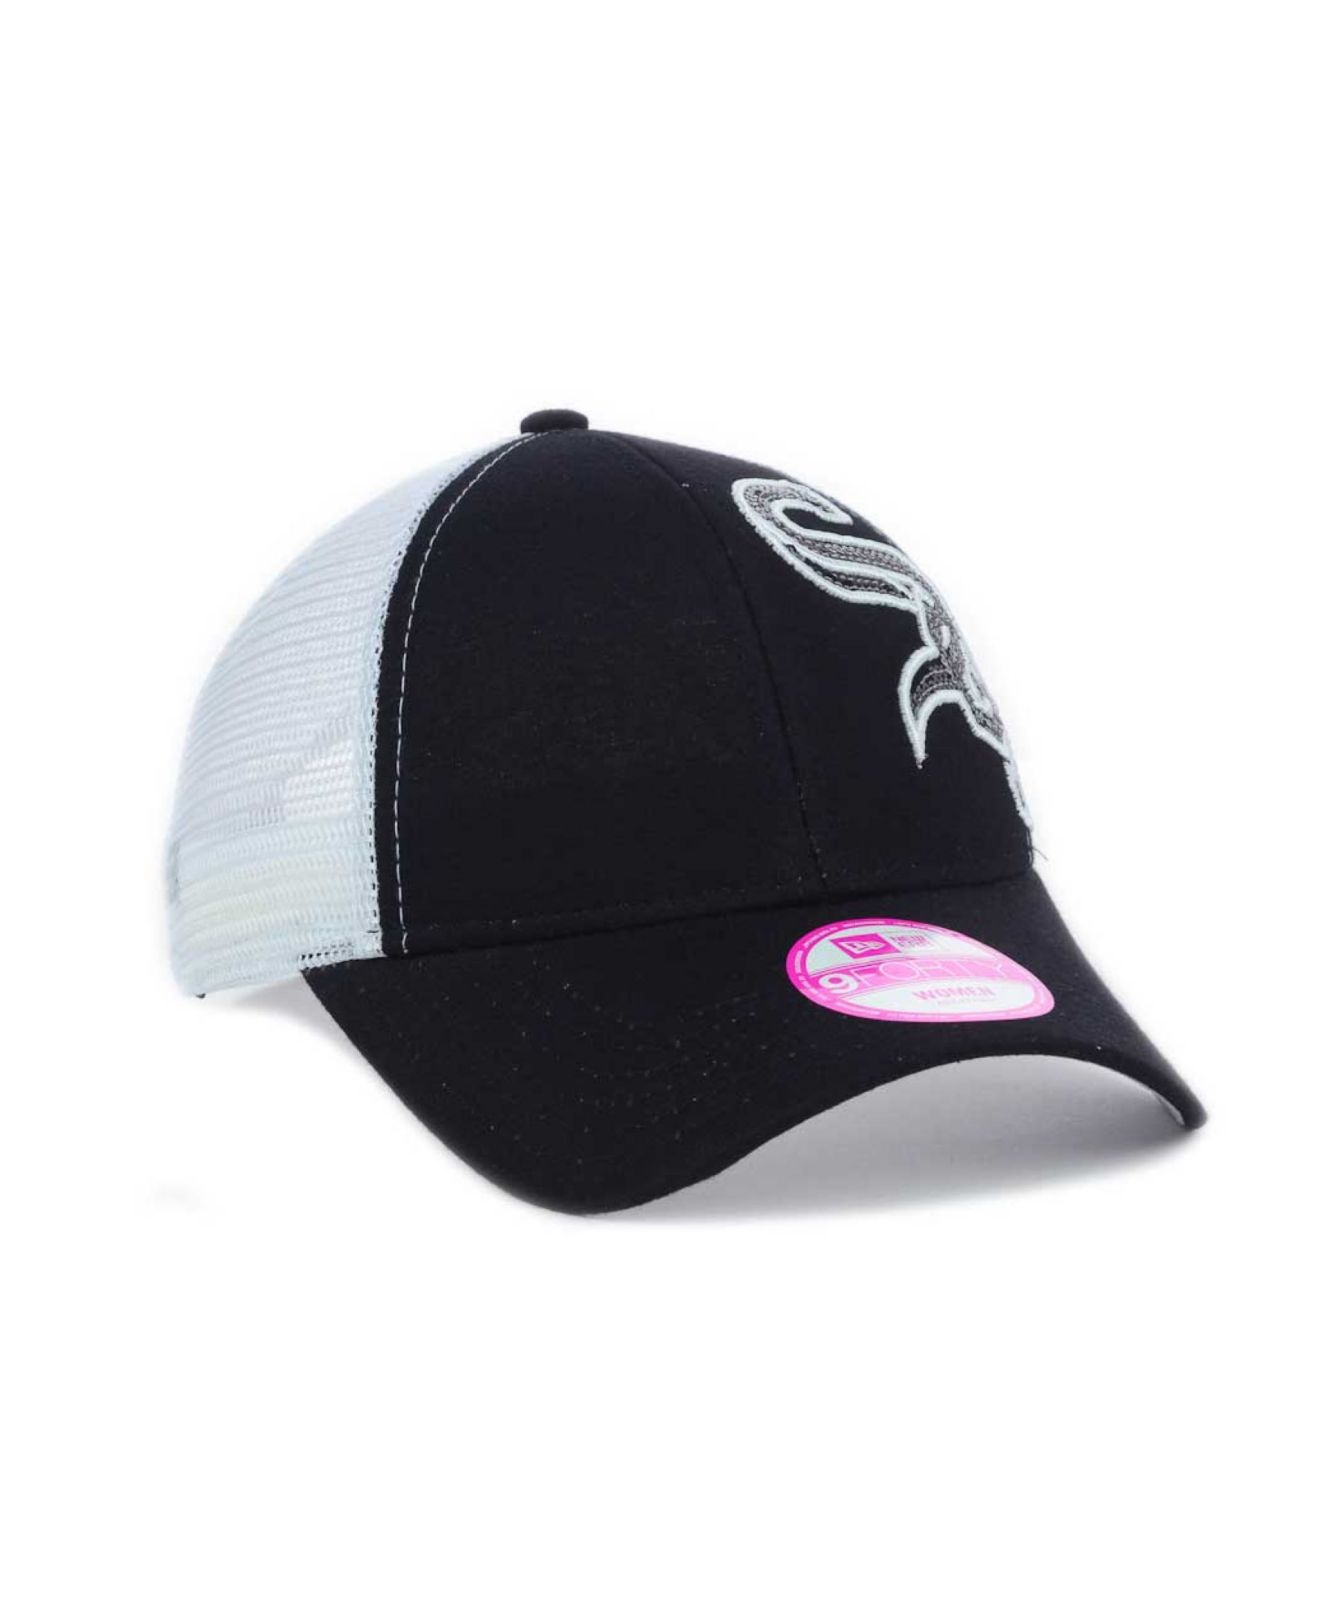 Lyst - KTZ Women S Chicago White Sox Mlb Sequin Shimmer 9Forty Cap ... 5a970276c636